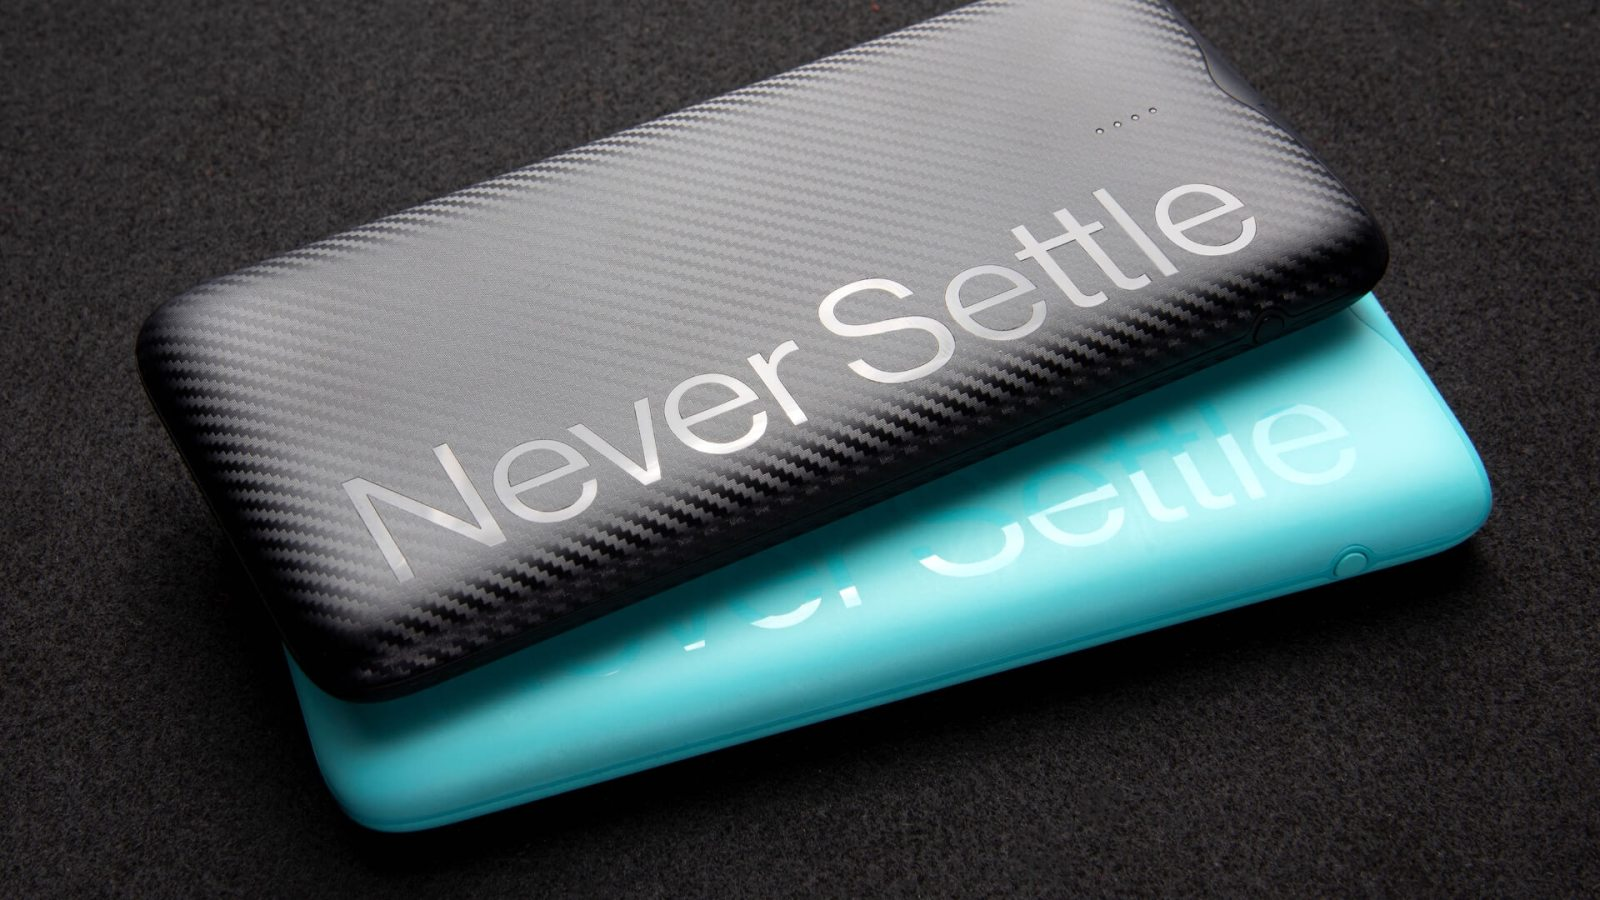 OnePlus Power Bank Price Drop in India